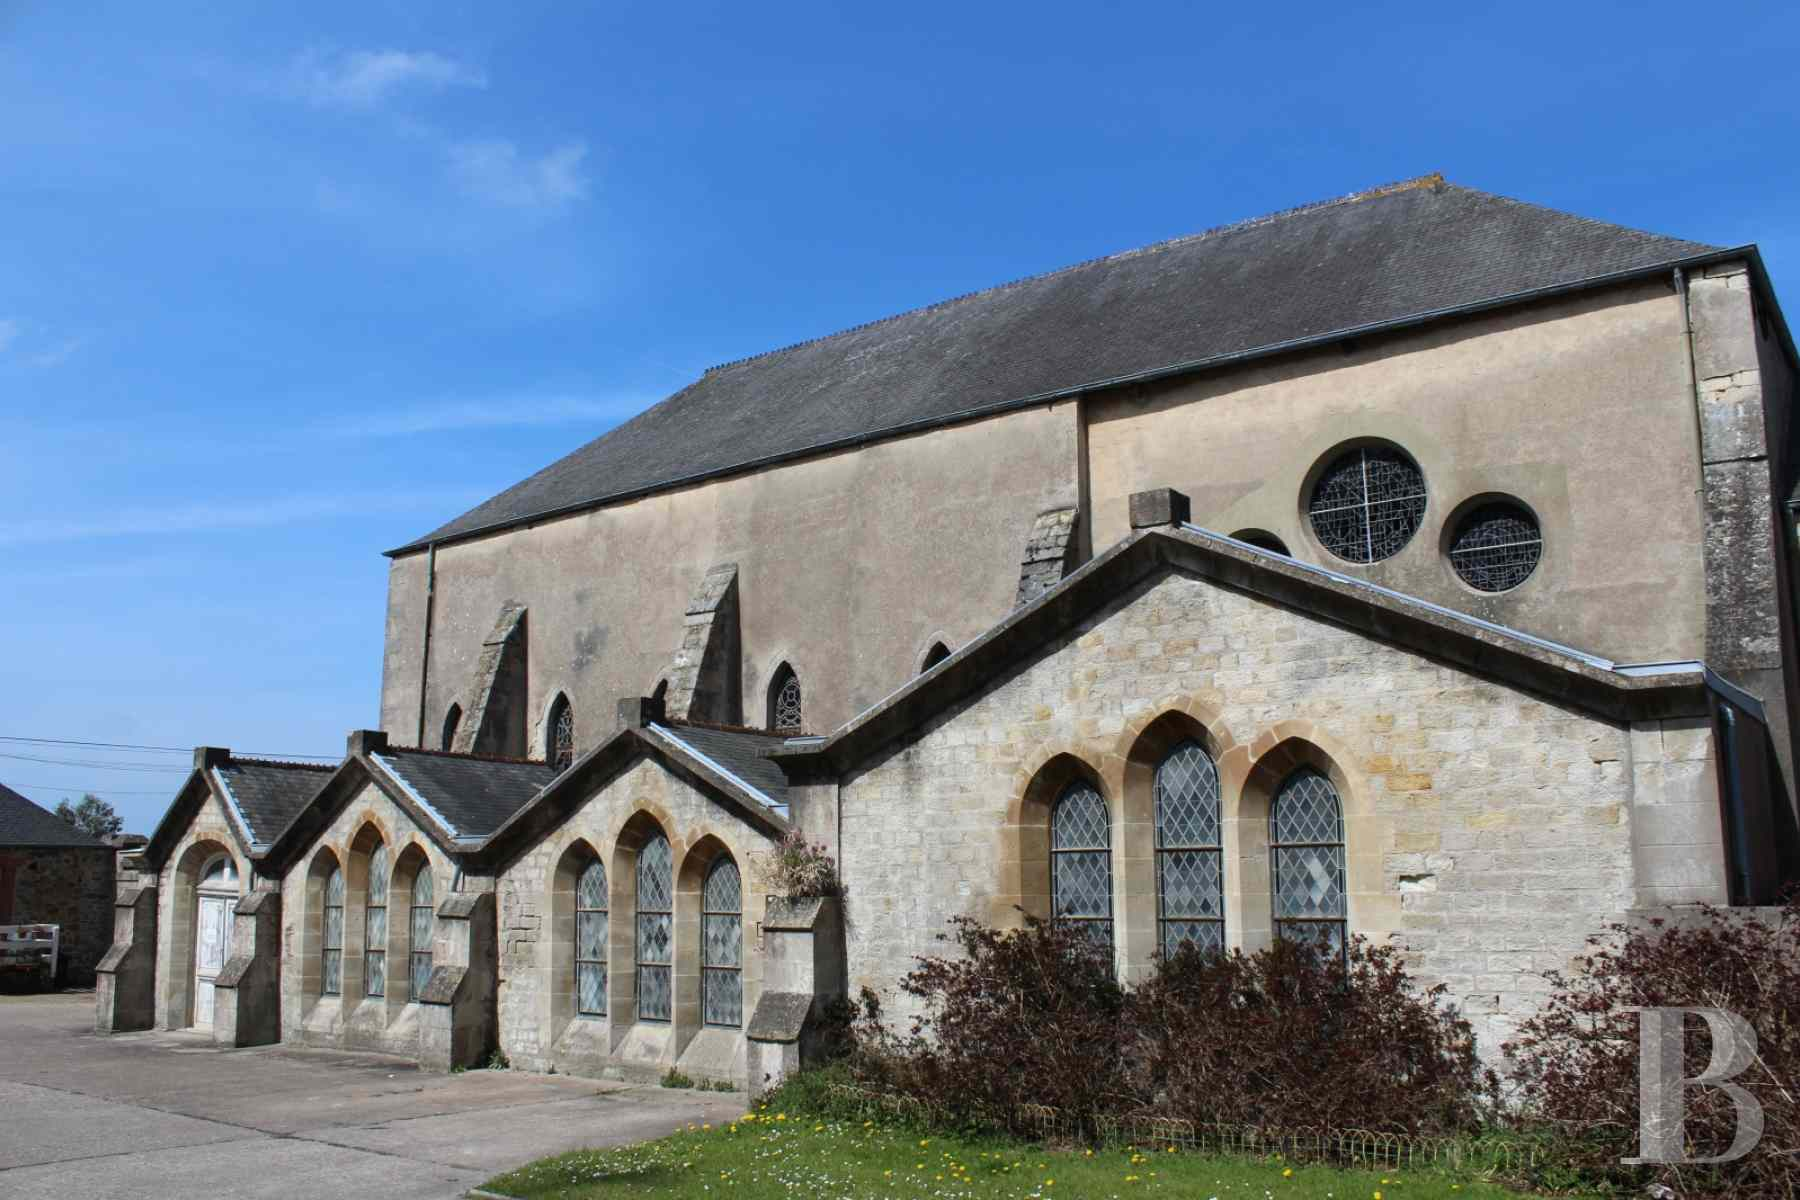 eglises a vendre basse normandie cotentin chapelle - 1 zoom